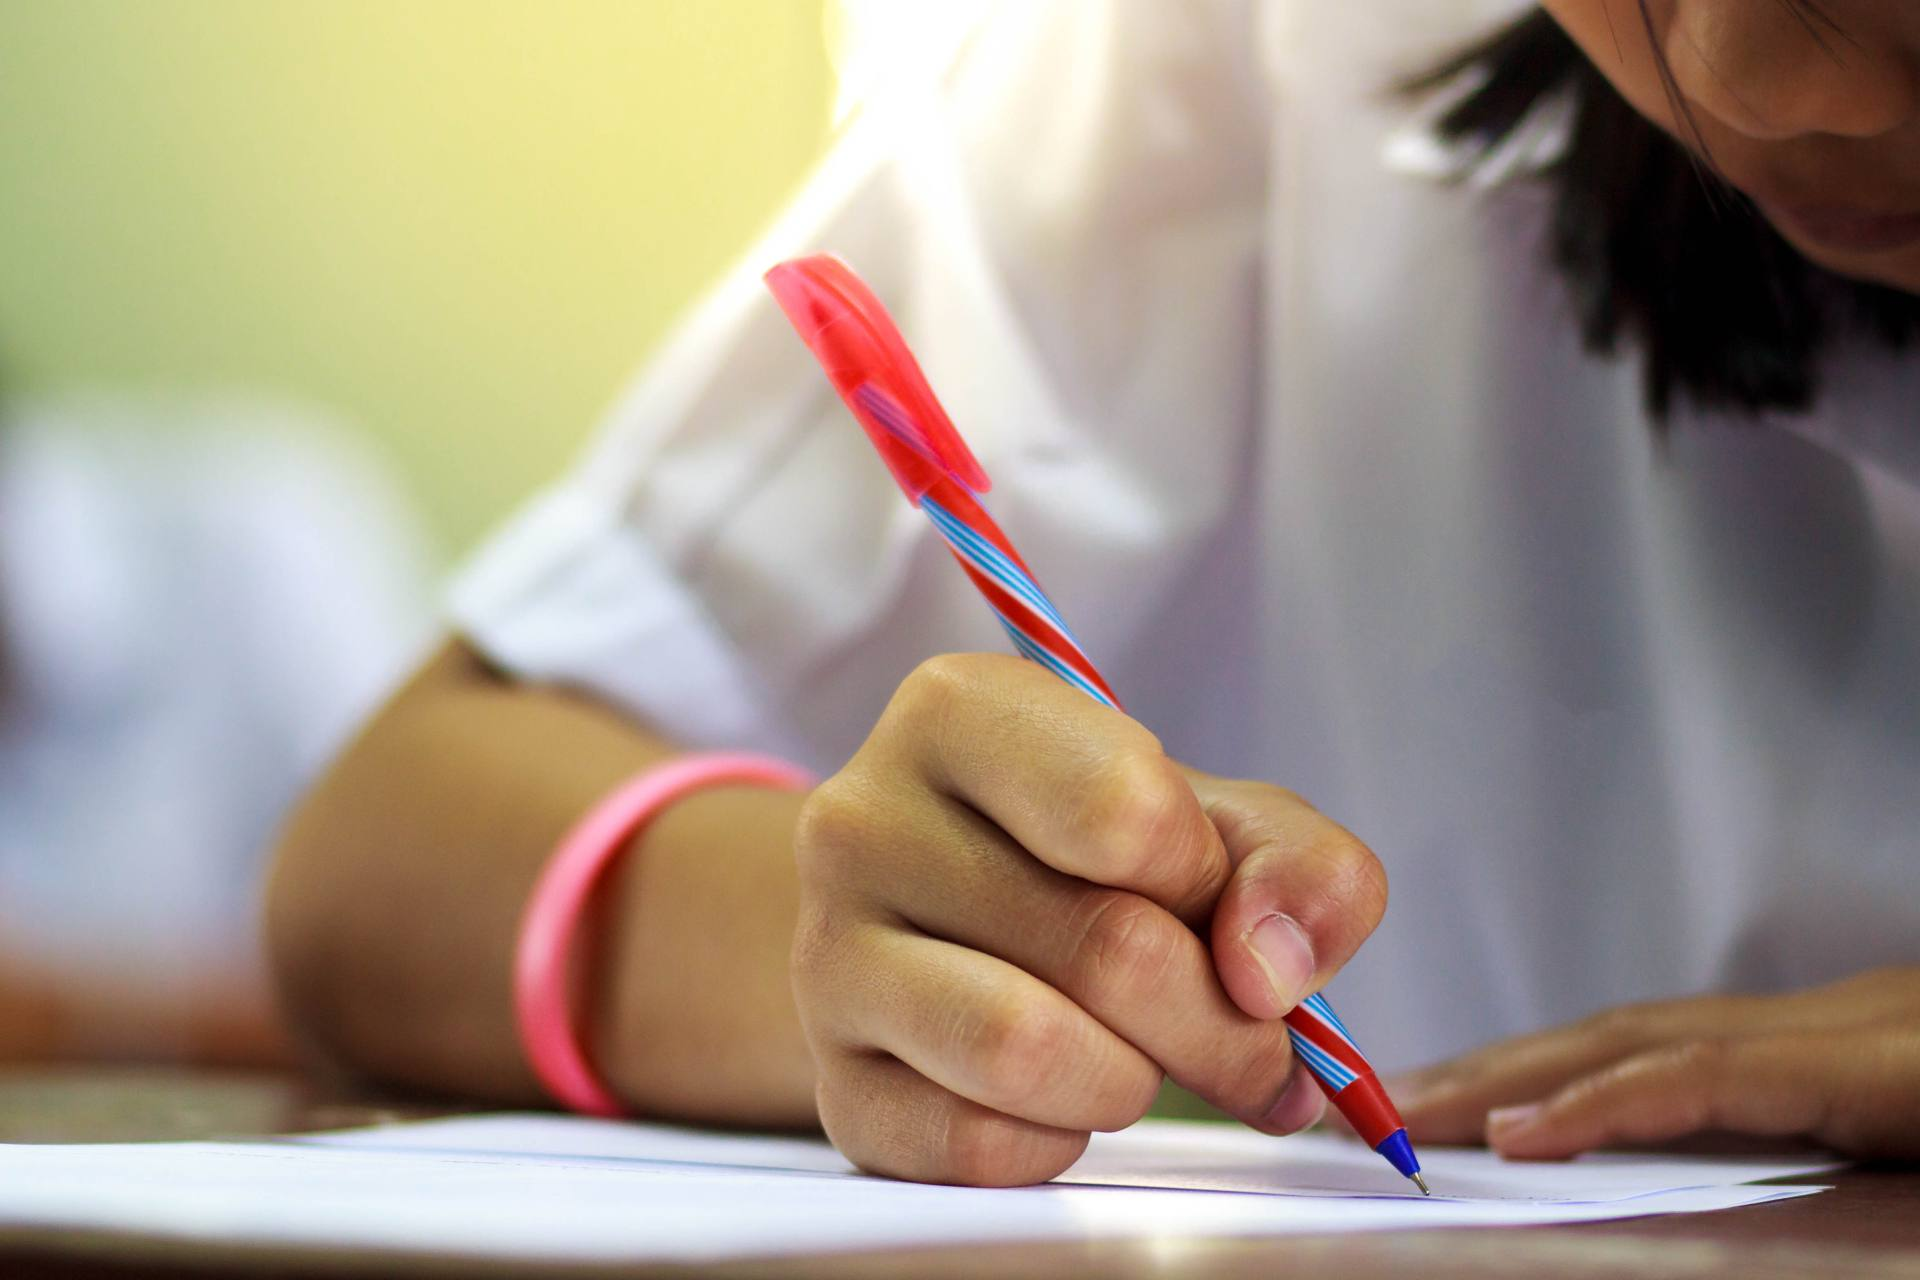 Student with Dysgraphia writing notes in the classroom